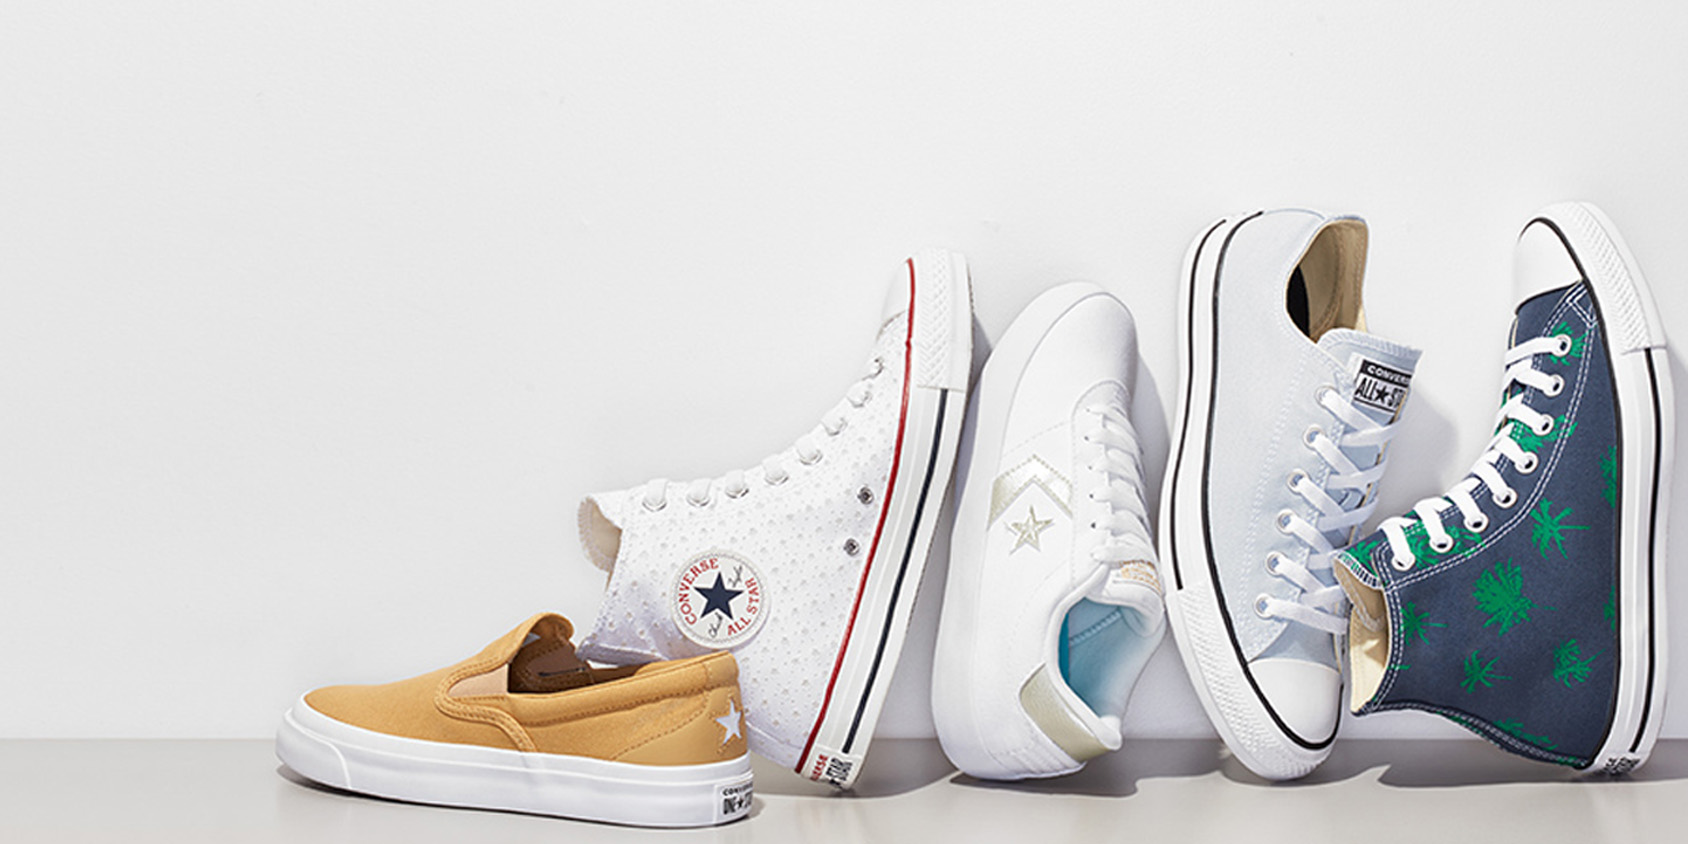 Find Converse sneakers for spring & summer from just $30 during Nordstrom Rack's Flash Sale